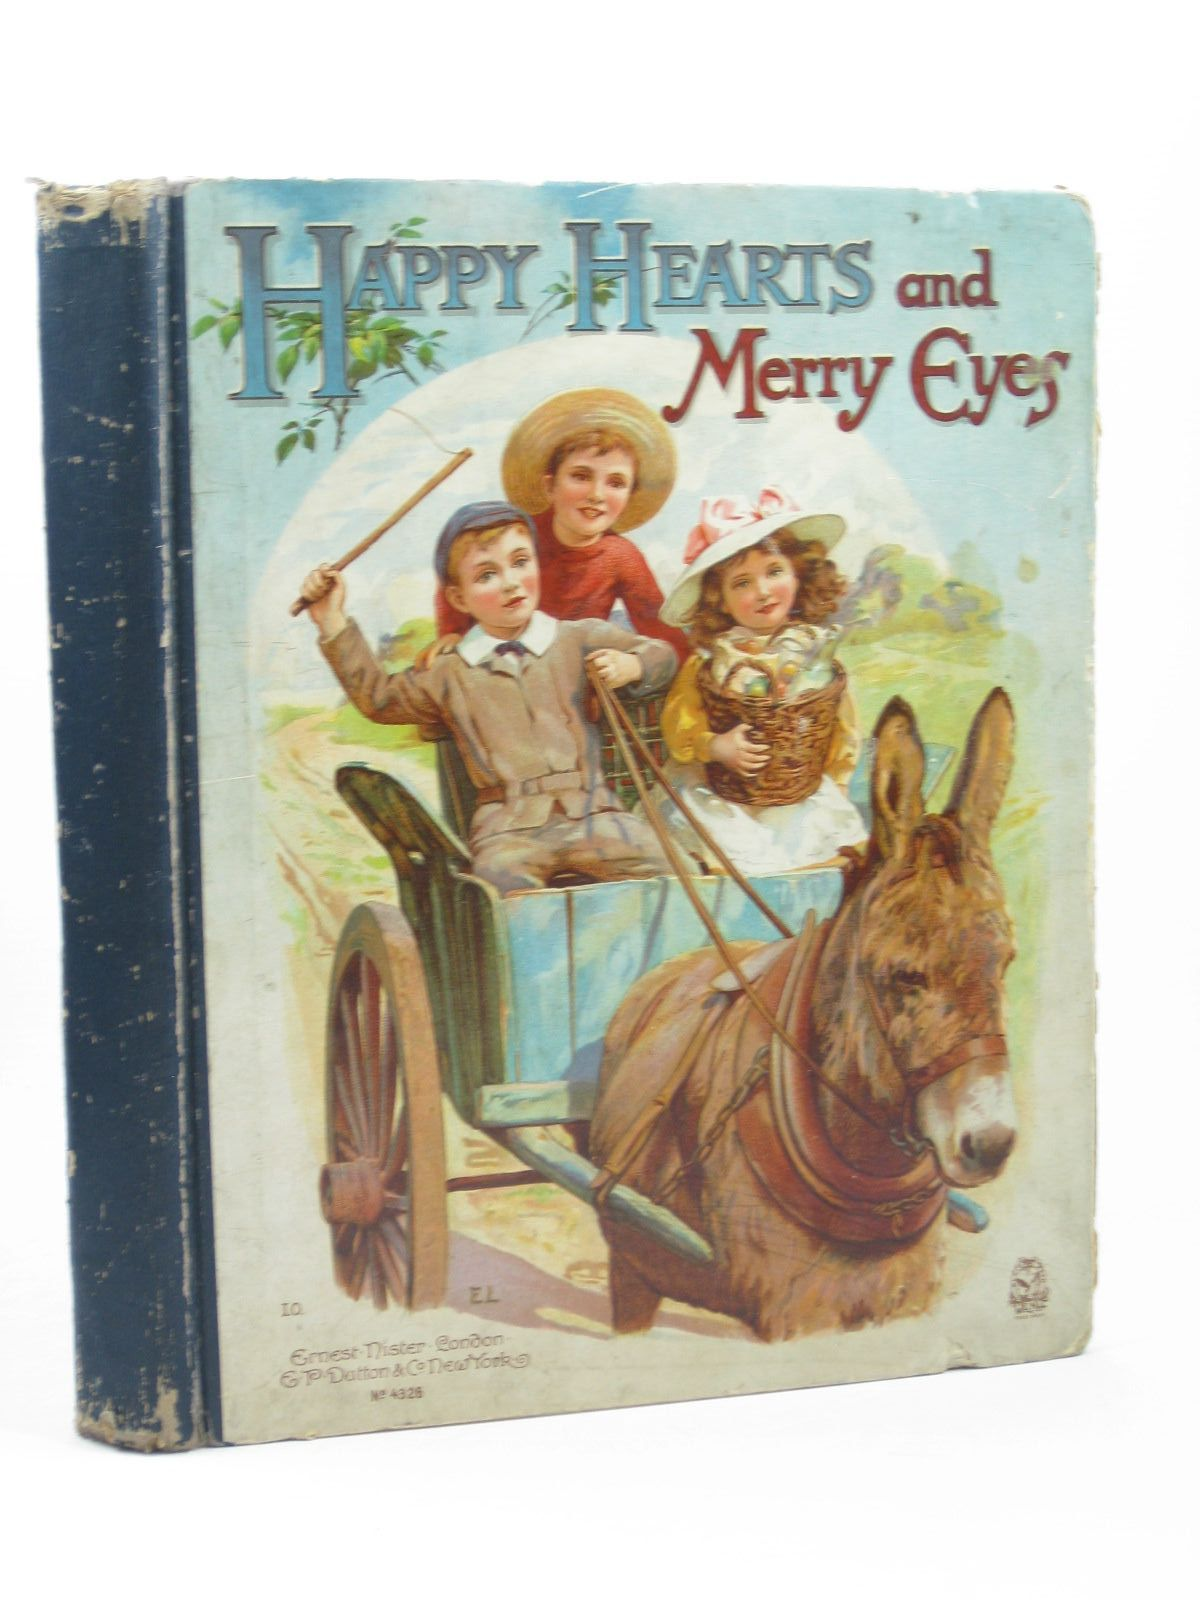 Photo of HAPPY HEARTS AND MERRY EYES written by Meade, L.T. Everett-Green, Evelyn Weedon, L.L. et al, illustrated by Wain, Louis Foster, W. Robinson, Gordon et al., published by Ernest Nister, E.P. Dutton & Co. (STOCK CODE: 1312407)  for sale by Stella & Rose's Books